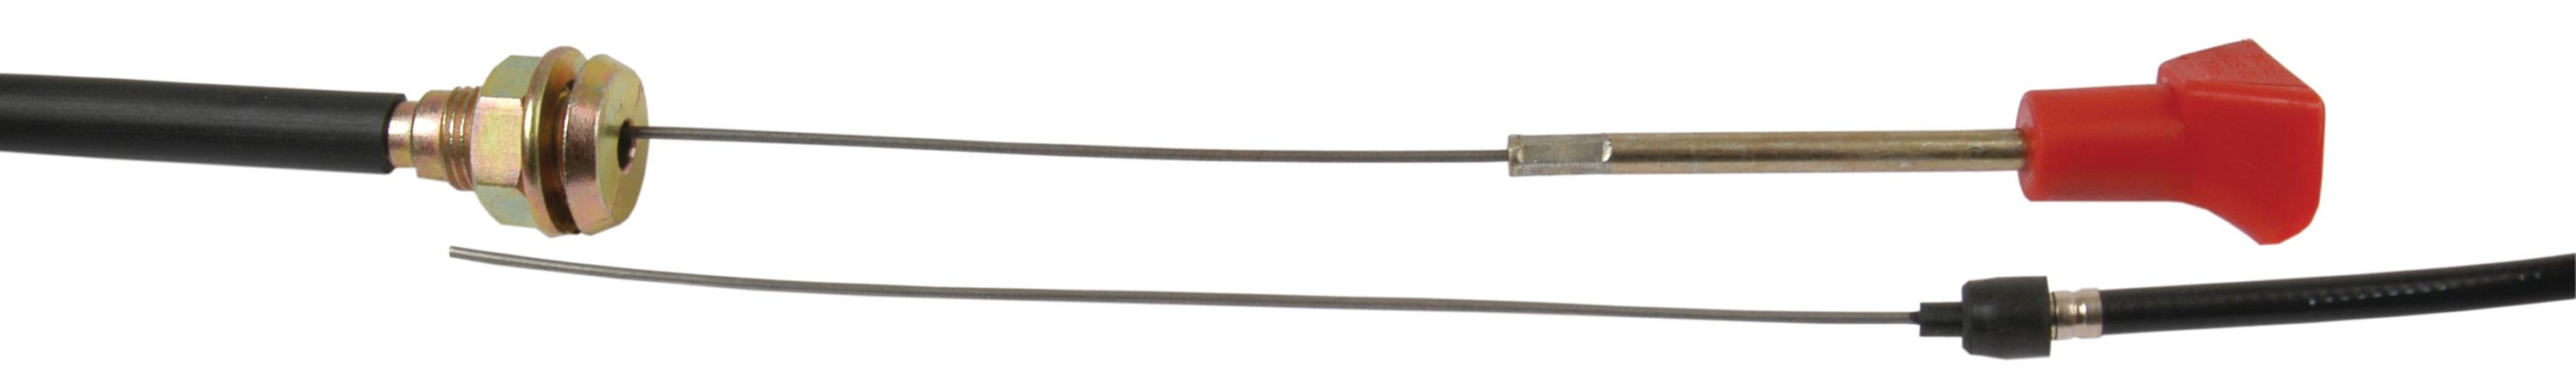 FORD NEW HOLLAND CABLE-STOP (1775MM) 65746